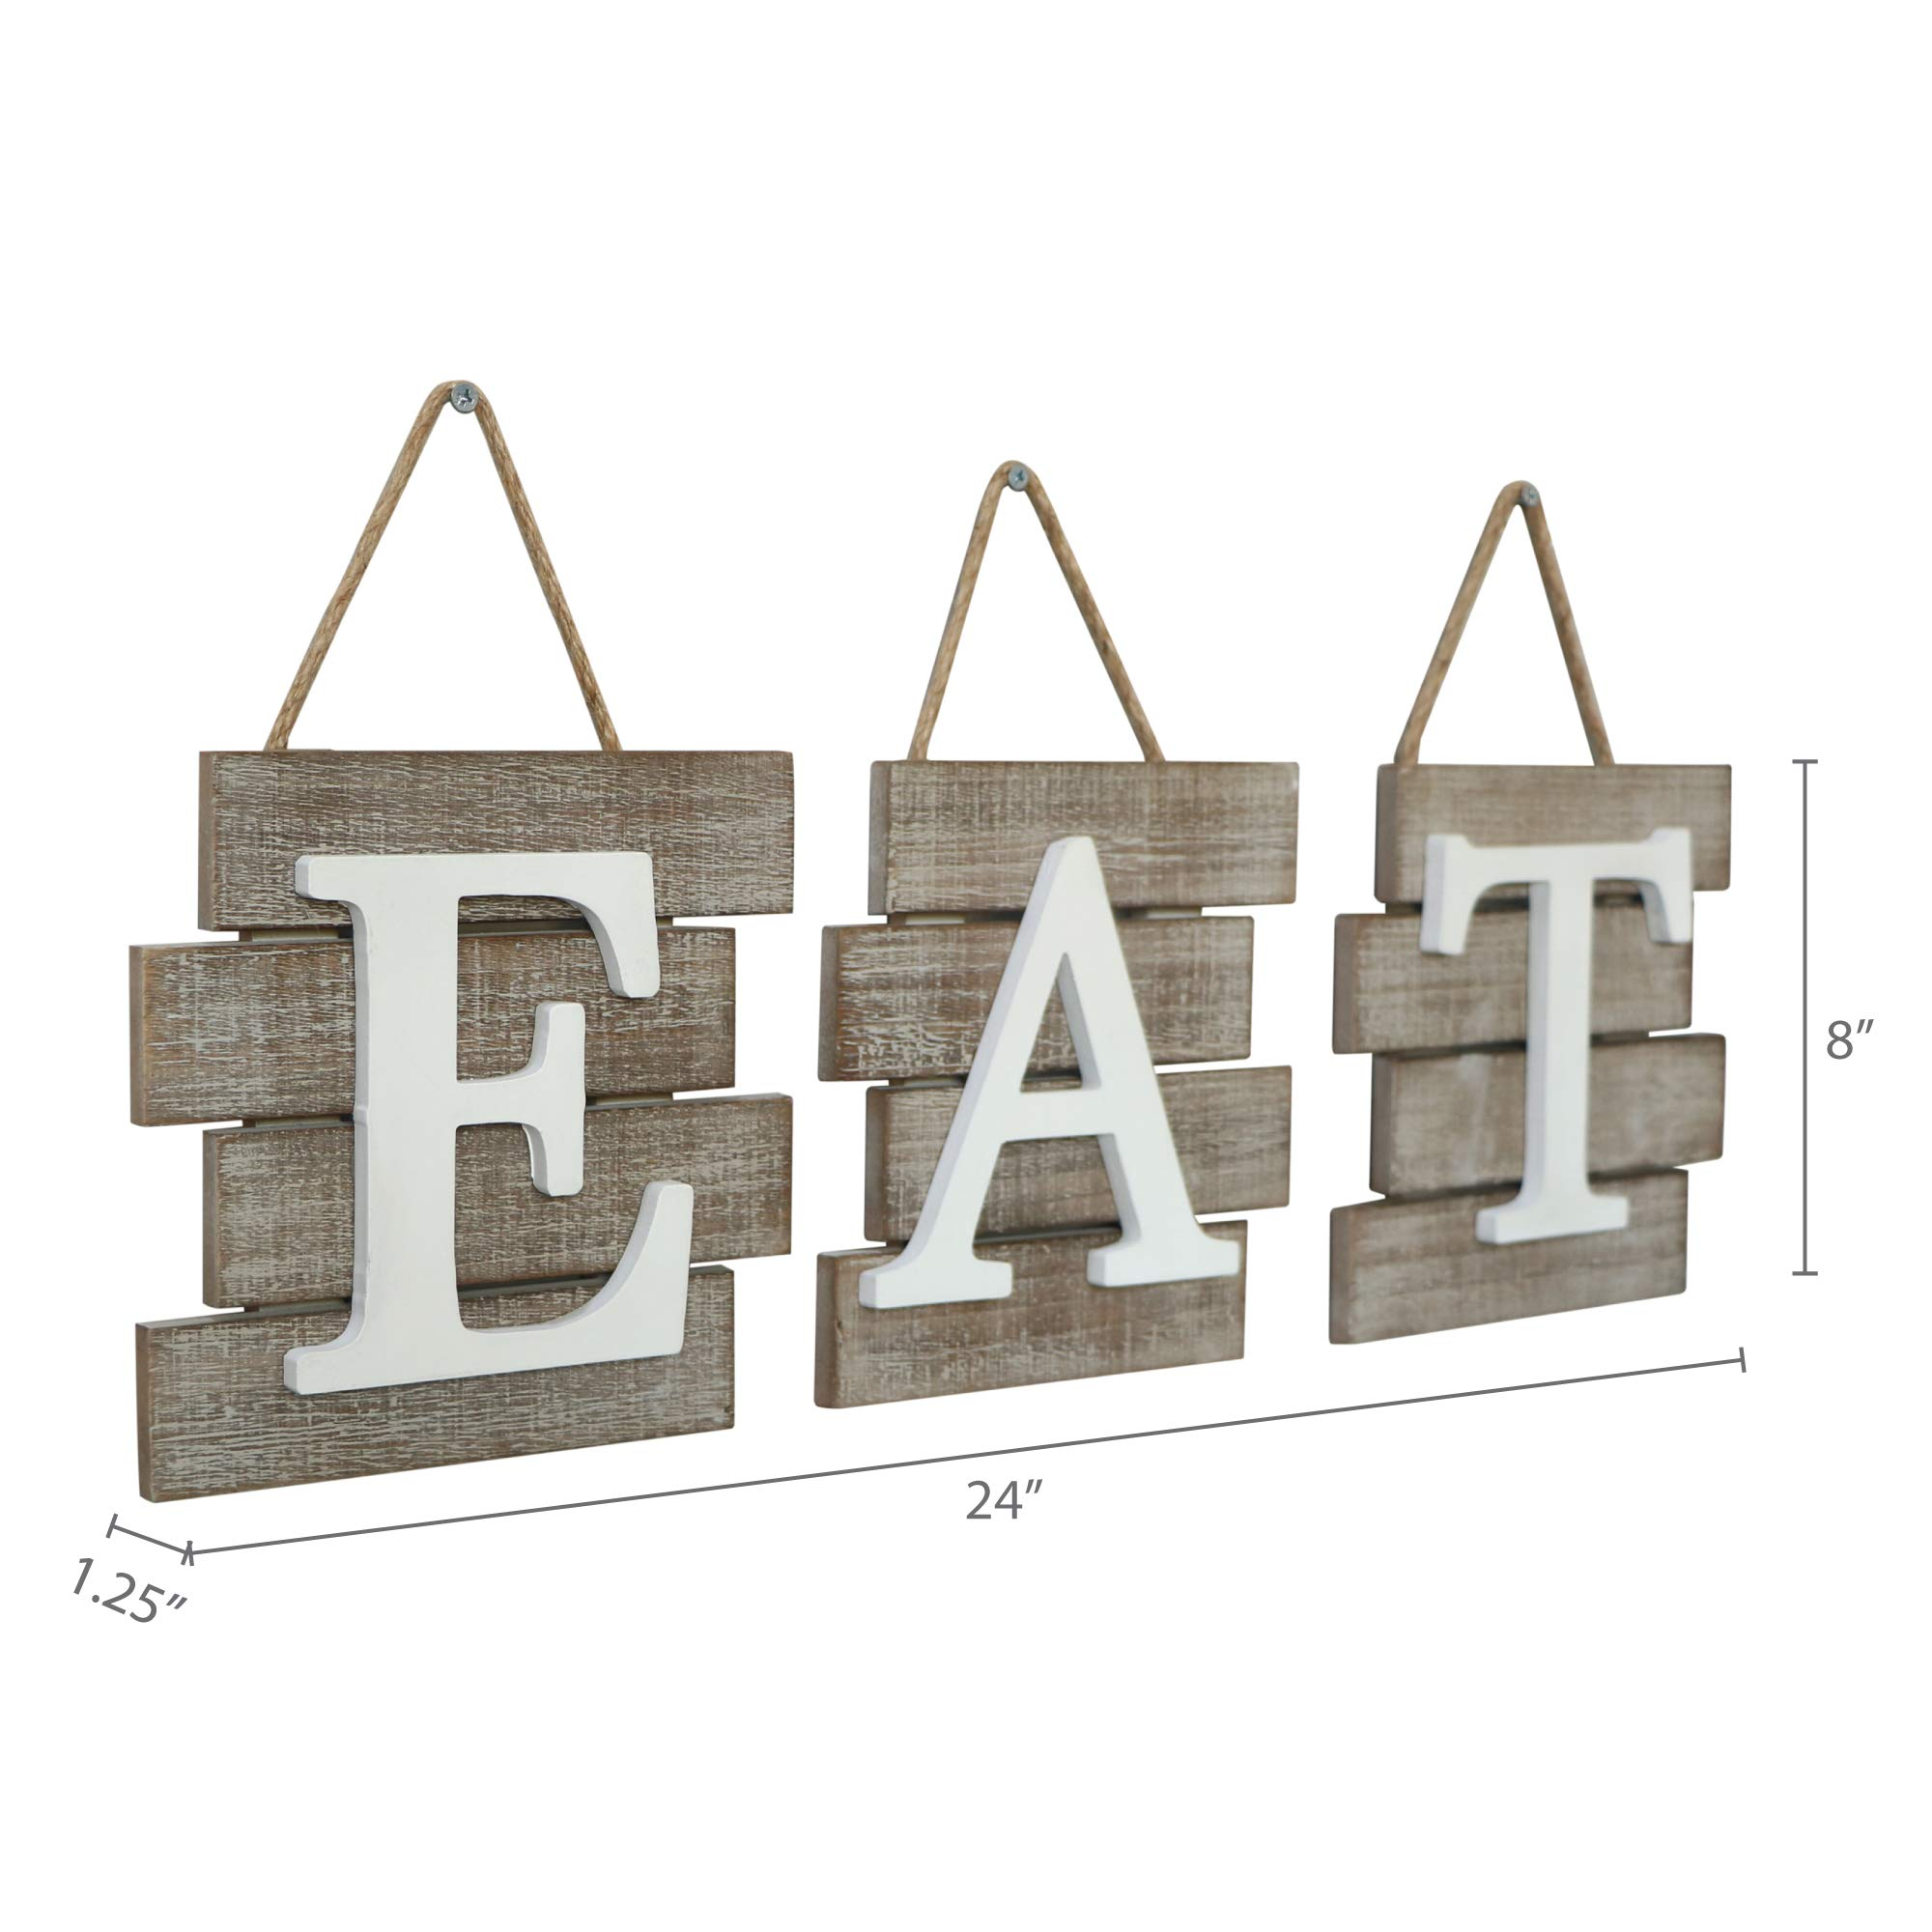 """Barnyard Designs Eat Sign Wall Decor for Kitchen and Home, Distressed Natural, Rustic Farmhouse Country Decorative Wall Art 24'' x 8"""" by Barnyard Designs (Image #7)"""